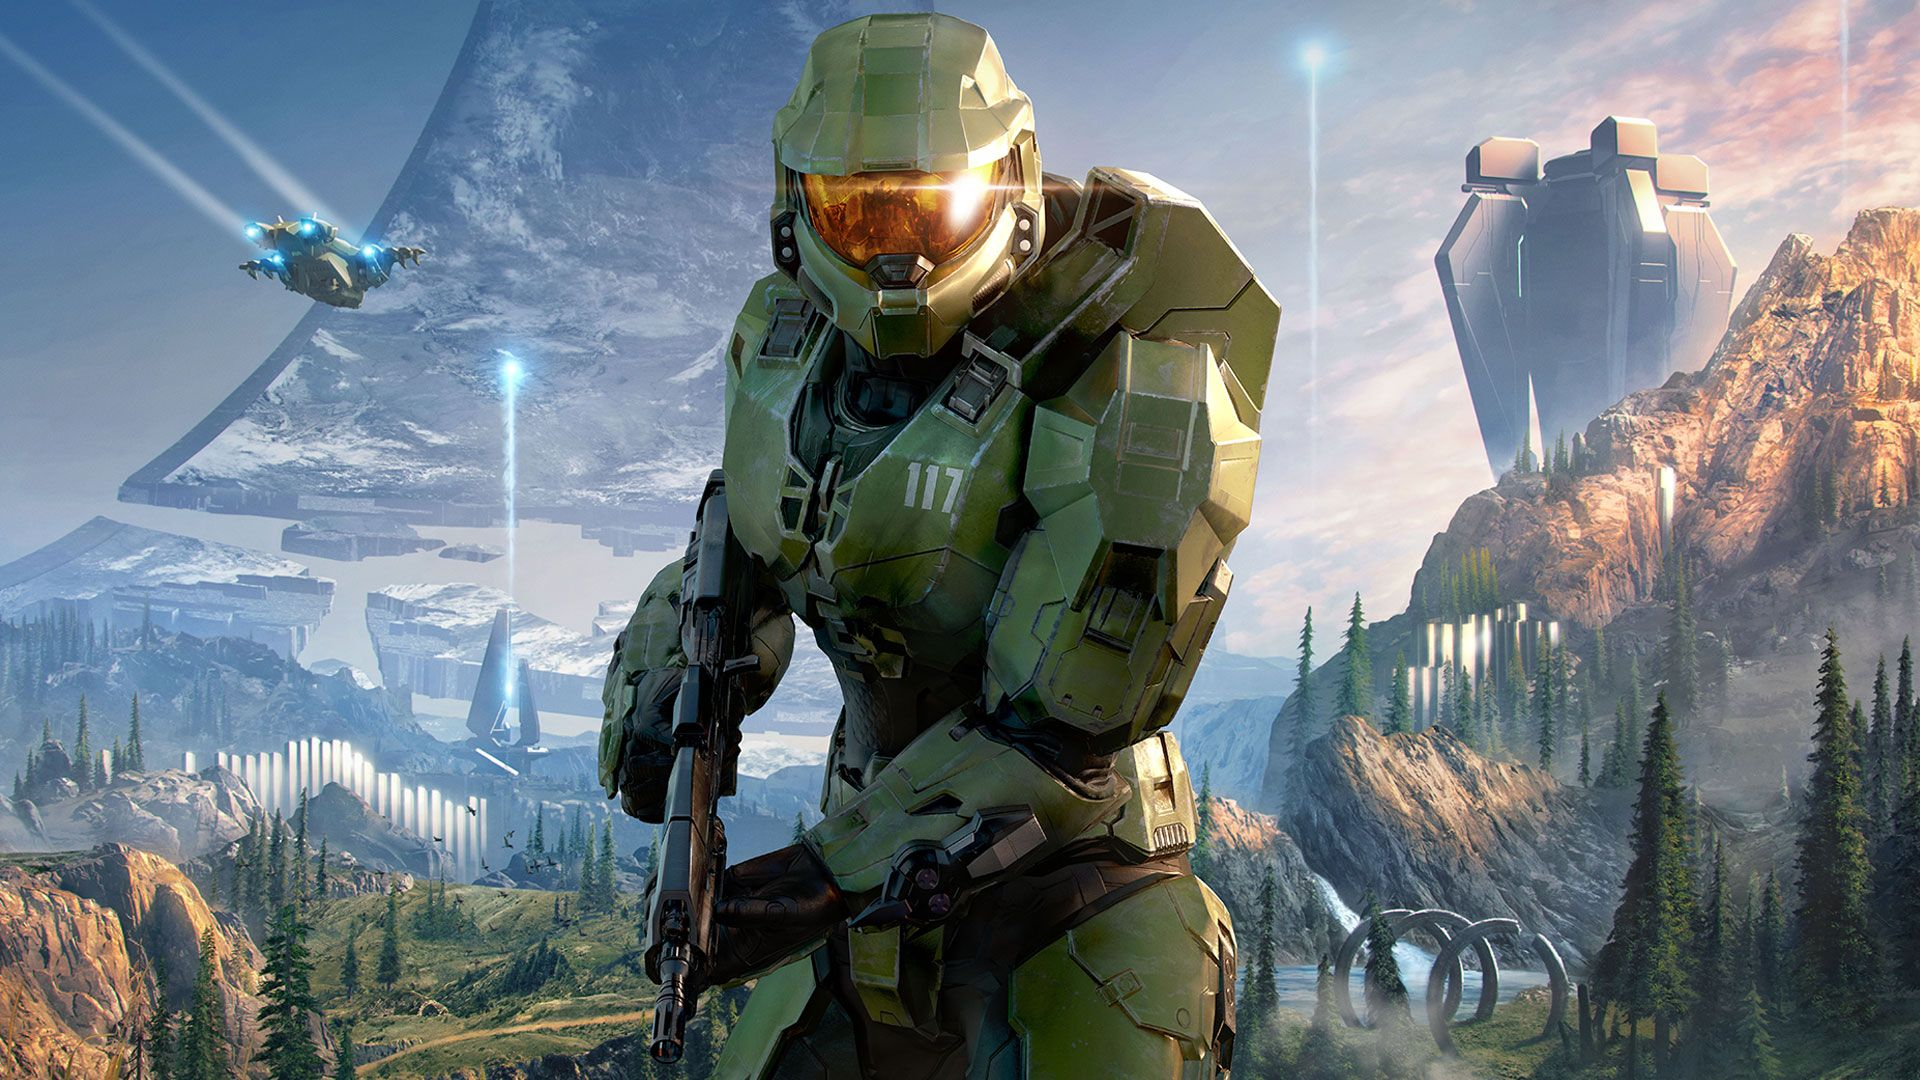 Halo TV show marks return to filming with first look at Master Chief helmet  | GamesRadar+